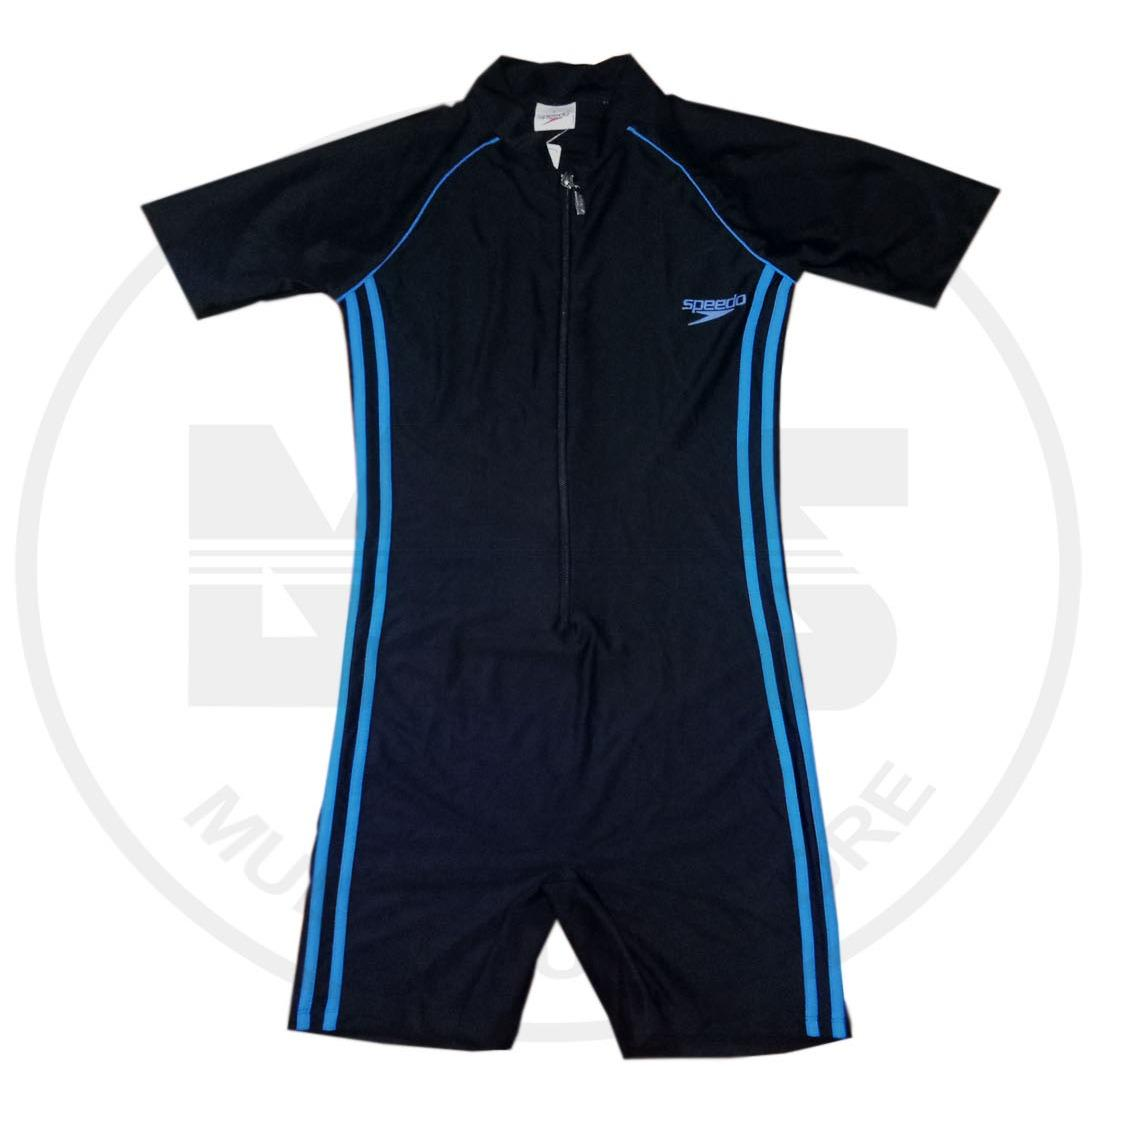 Baju Diving Speedo original list 2 biru